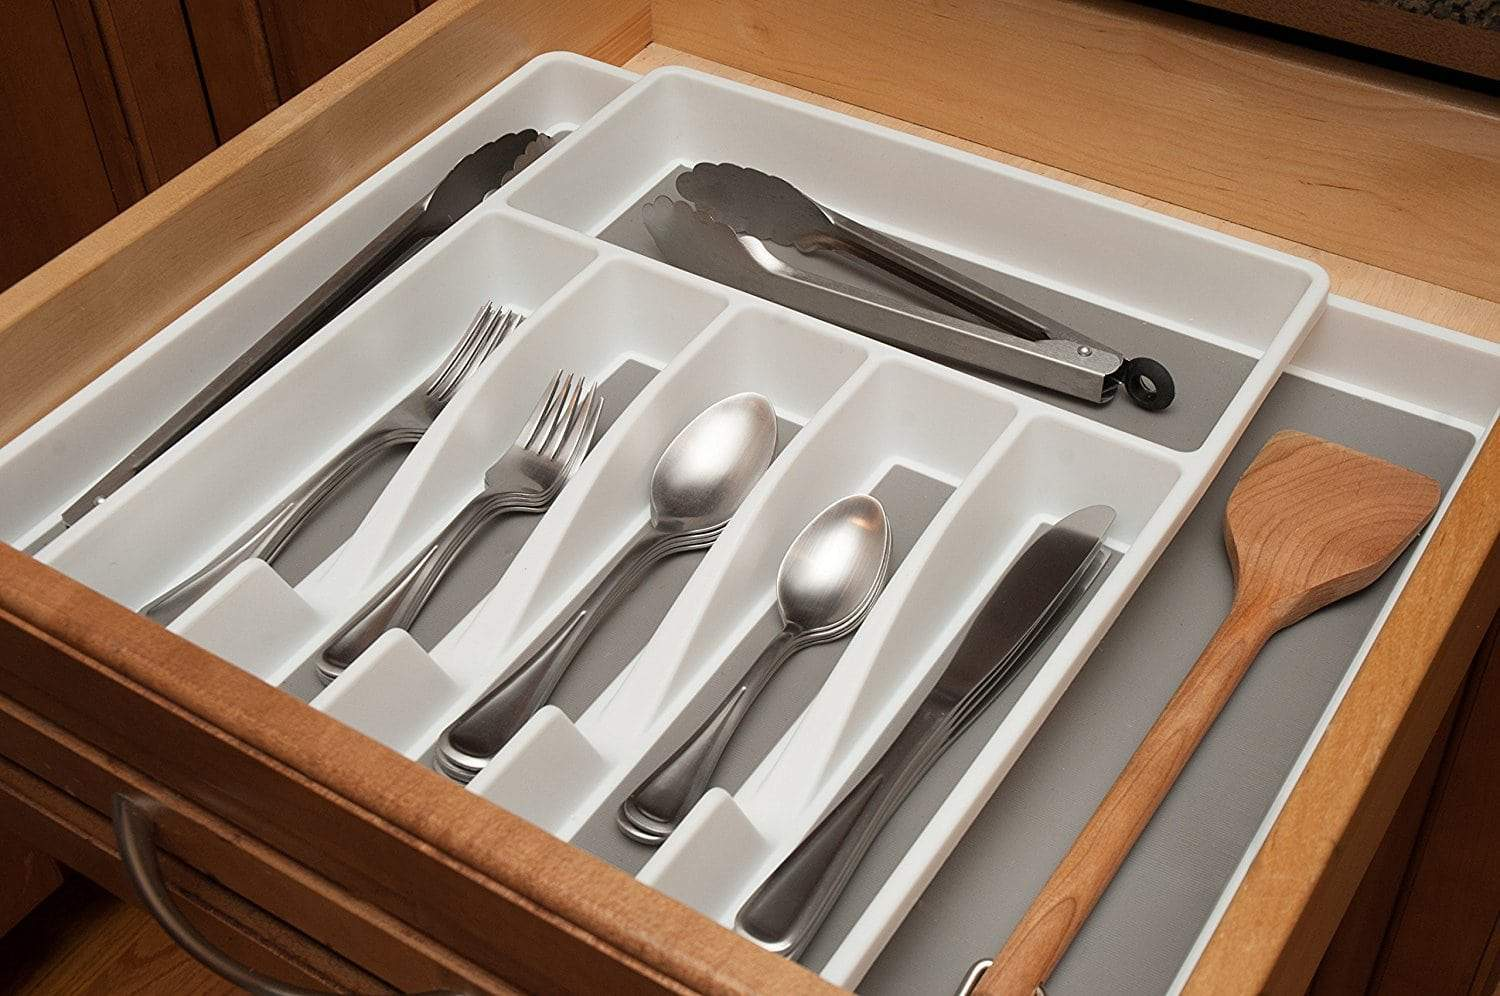 Discover kd organizers 8 slot expandable kitchen or desk drawer organizer large adjustable storage tray for silverware utensils office supplies and more